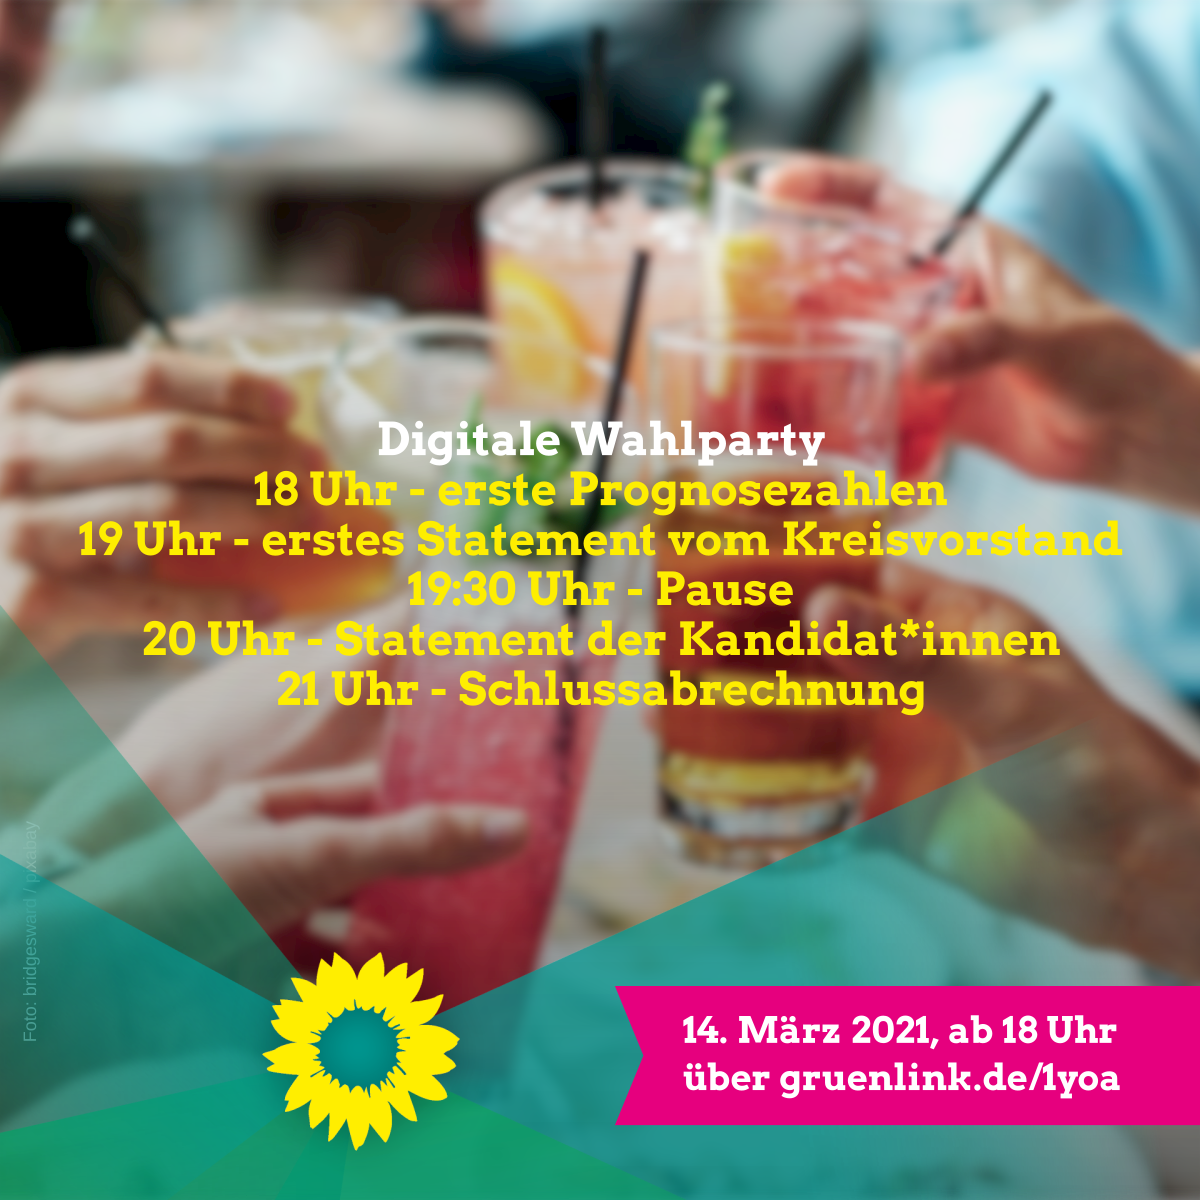 Digitale Wahlparty